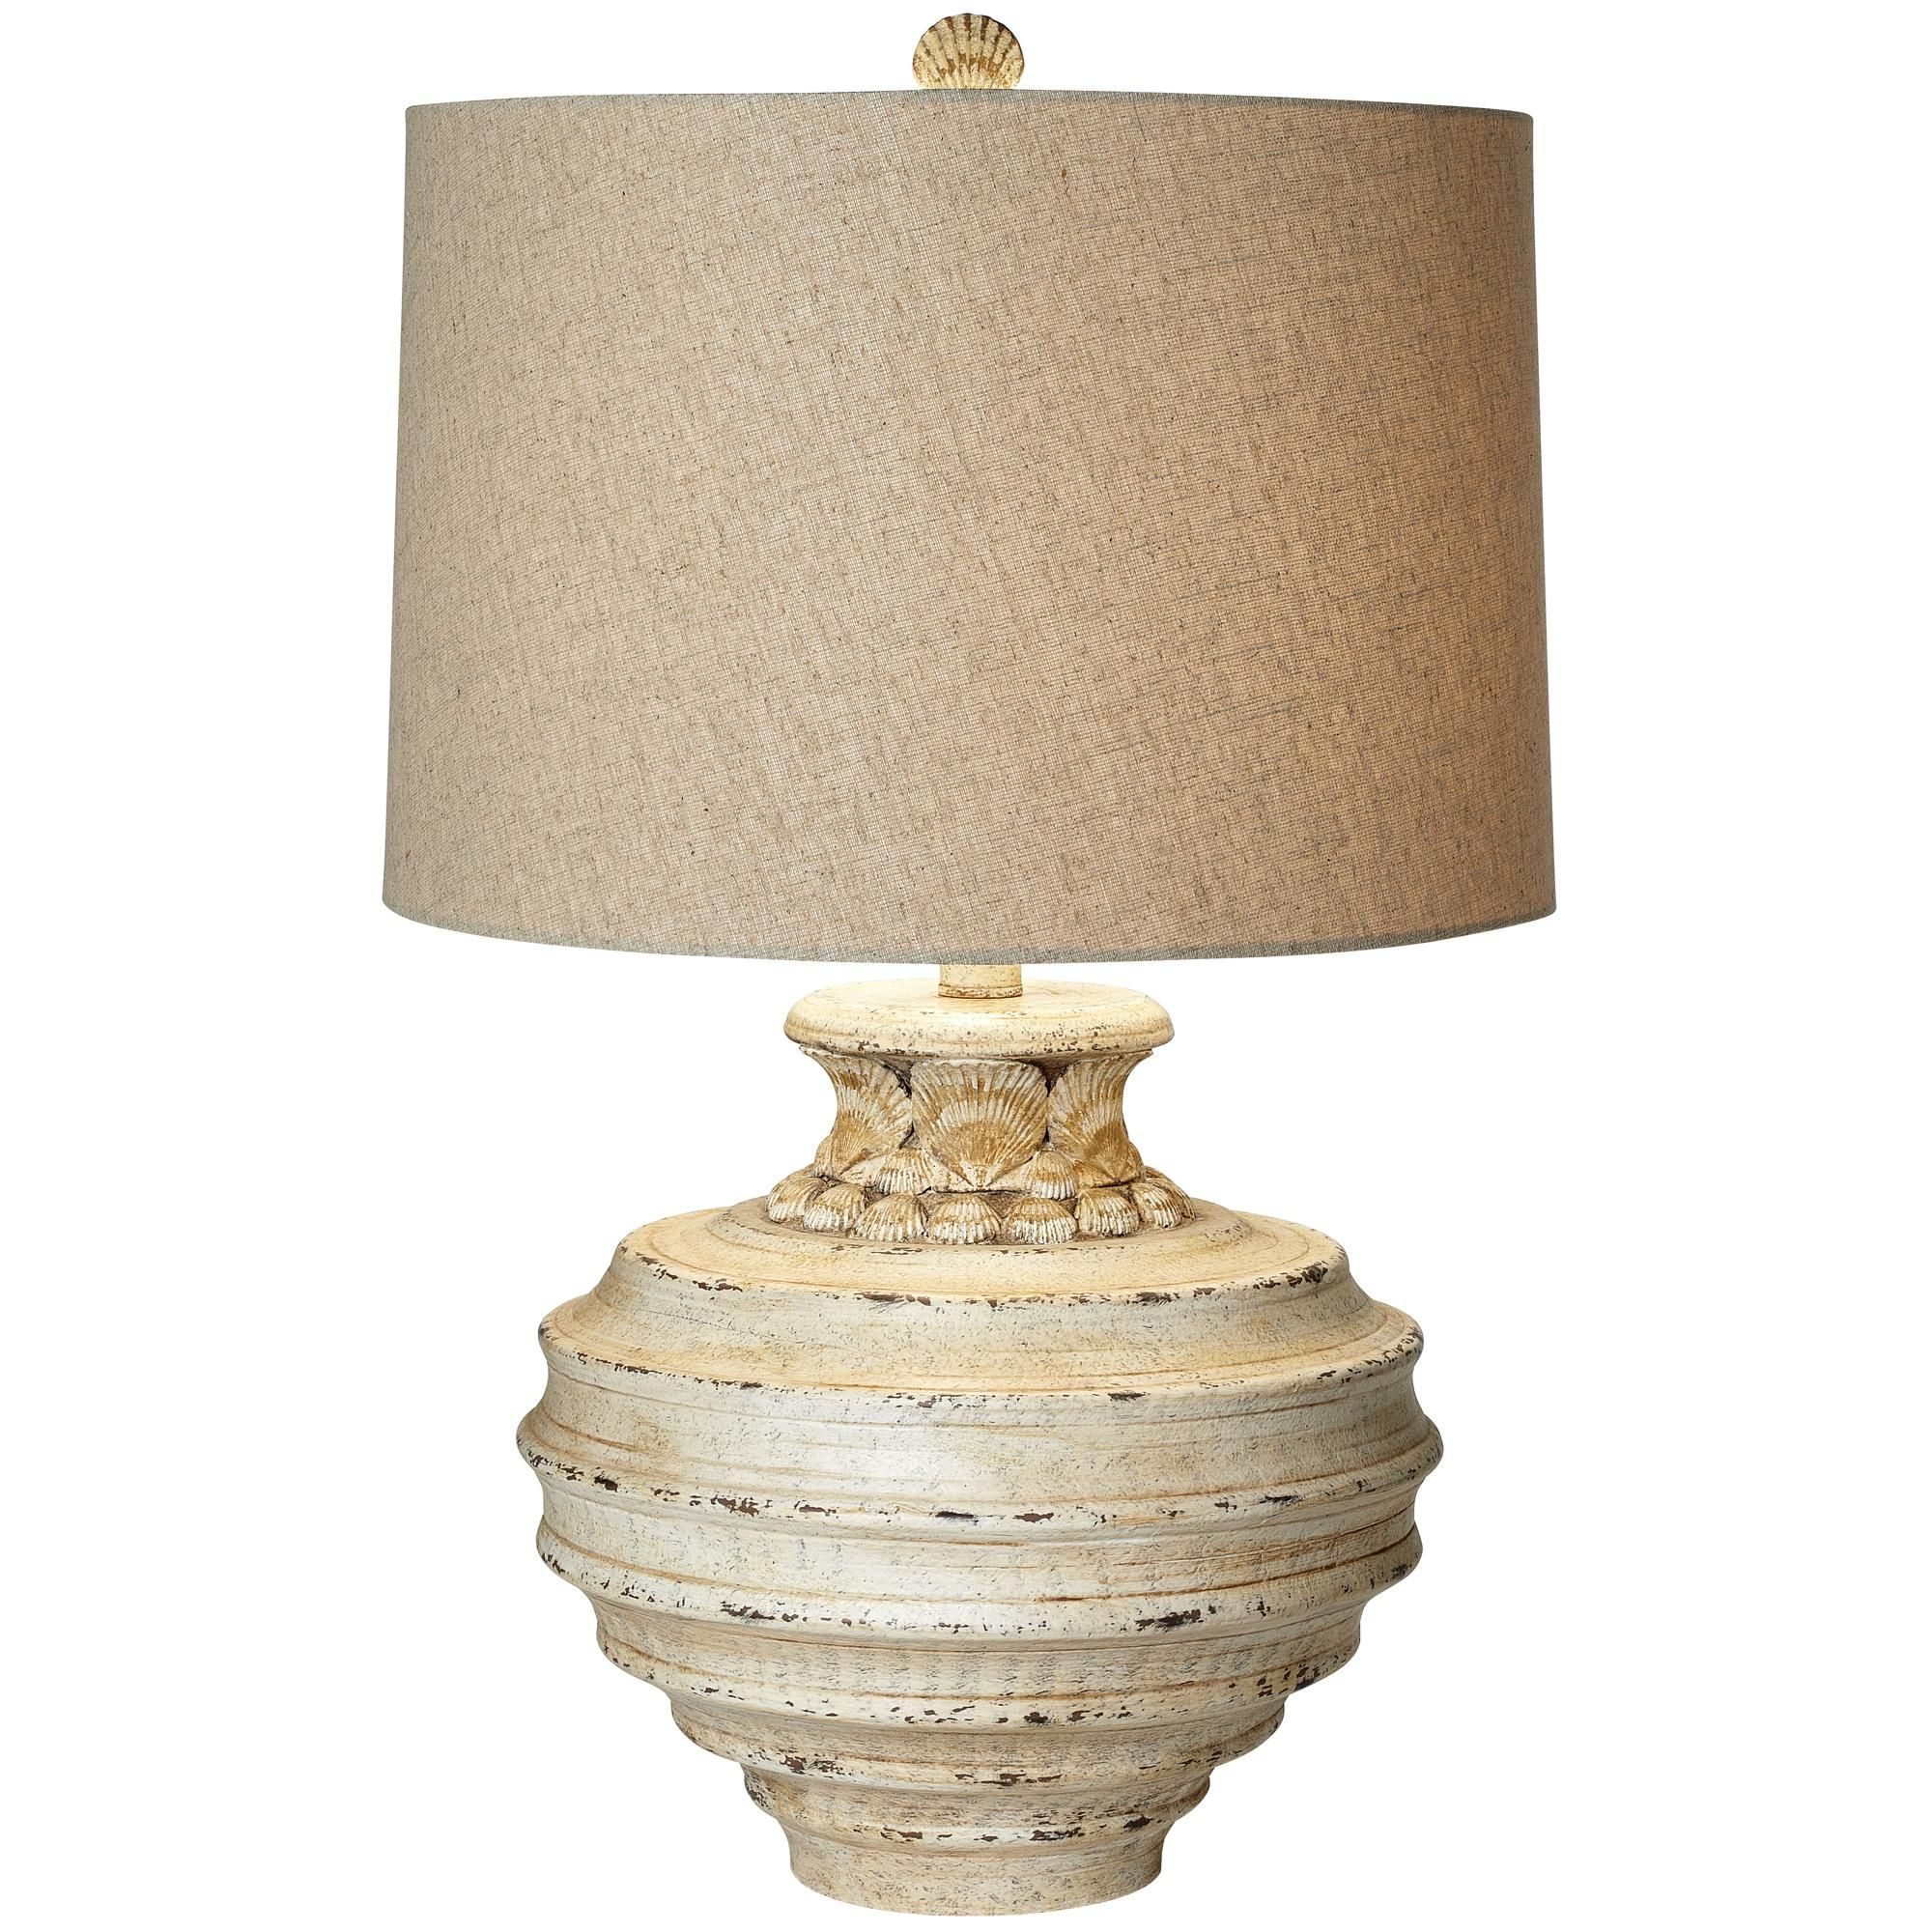 Ocean Crown Sea Shell Table Lamp V2289 Lamps Plus Table Lamp Lamp Beige Table Lamps